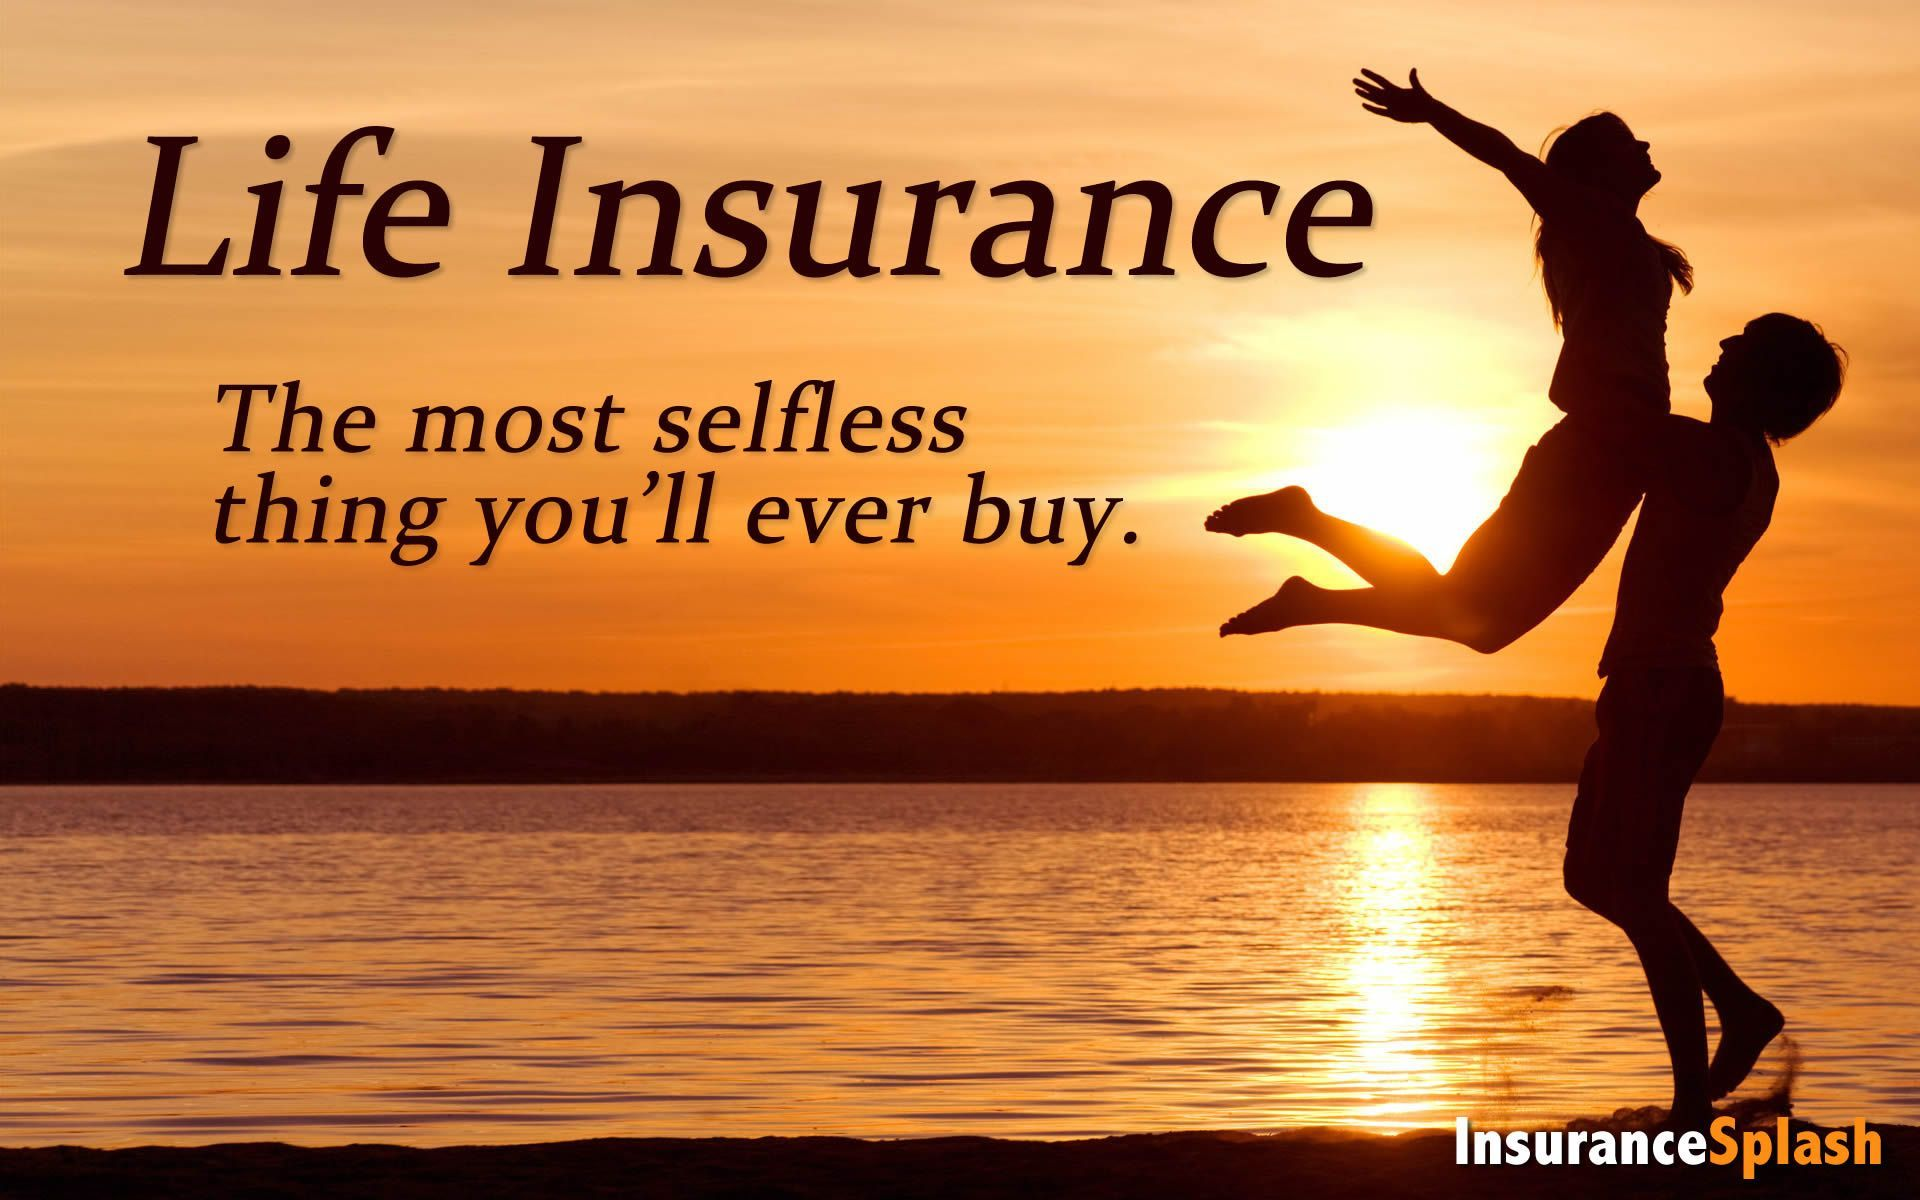 Life Insurance The Most Selfless Thing You Ll Every Buy